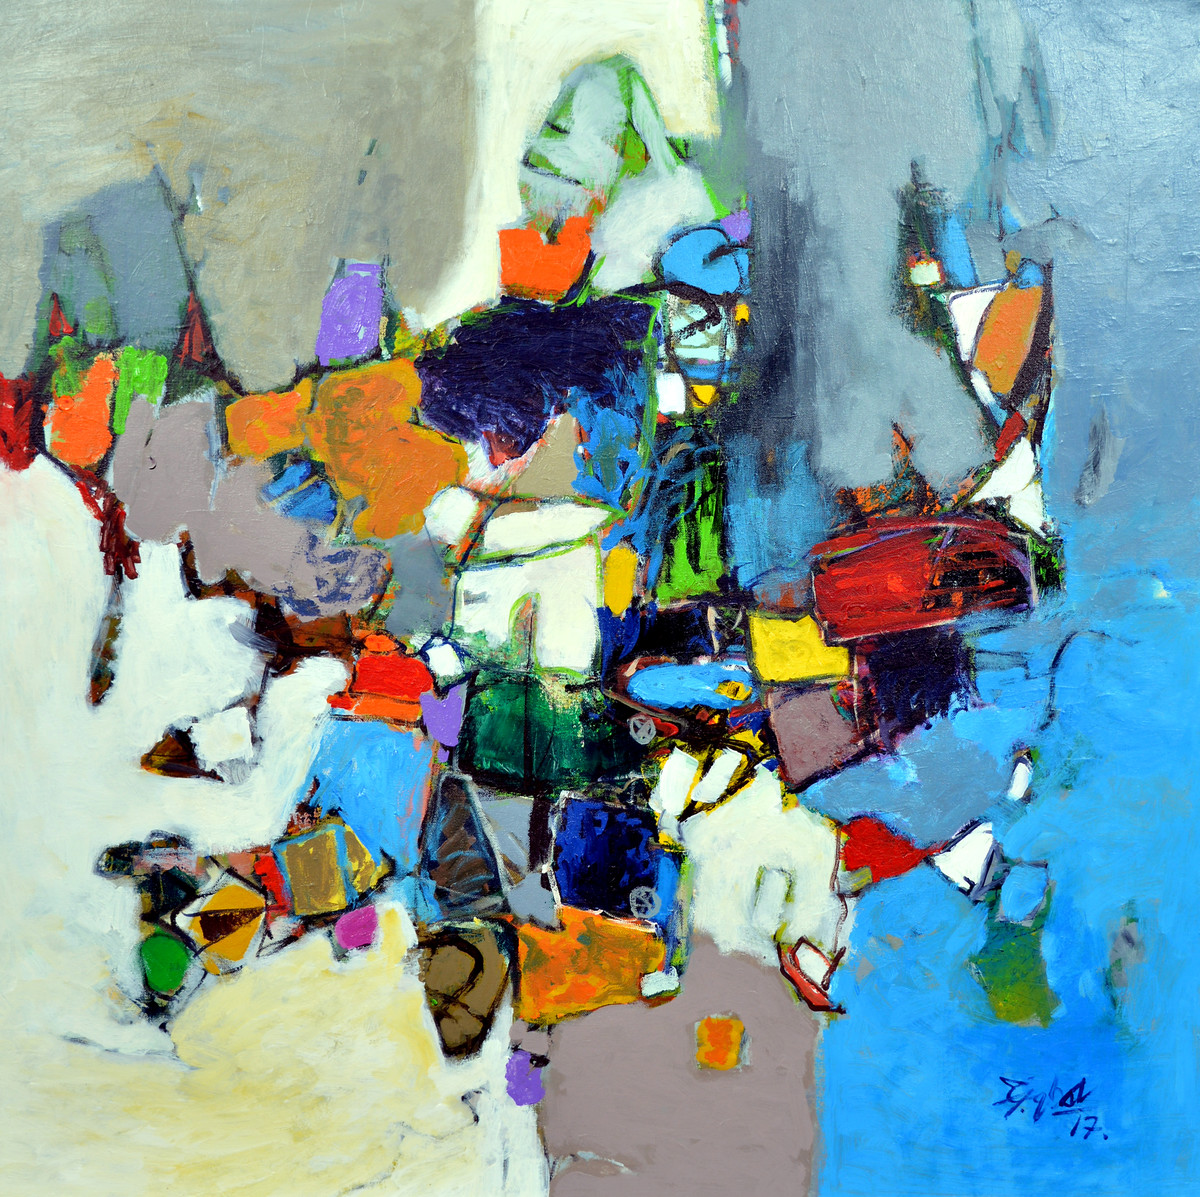 nostalgic by Javid Iqbal, Abstract Painting, Acrylic on Canvas, Cyan color